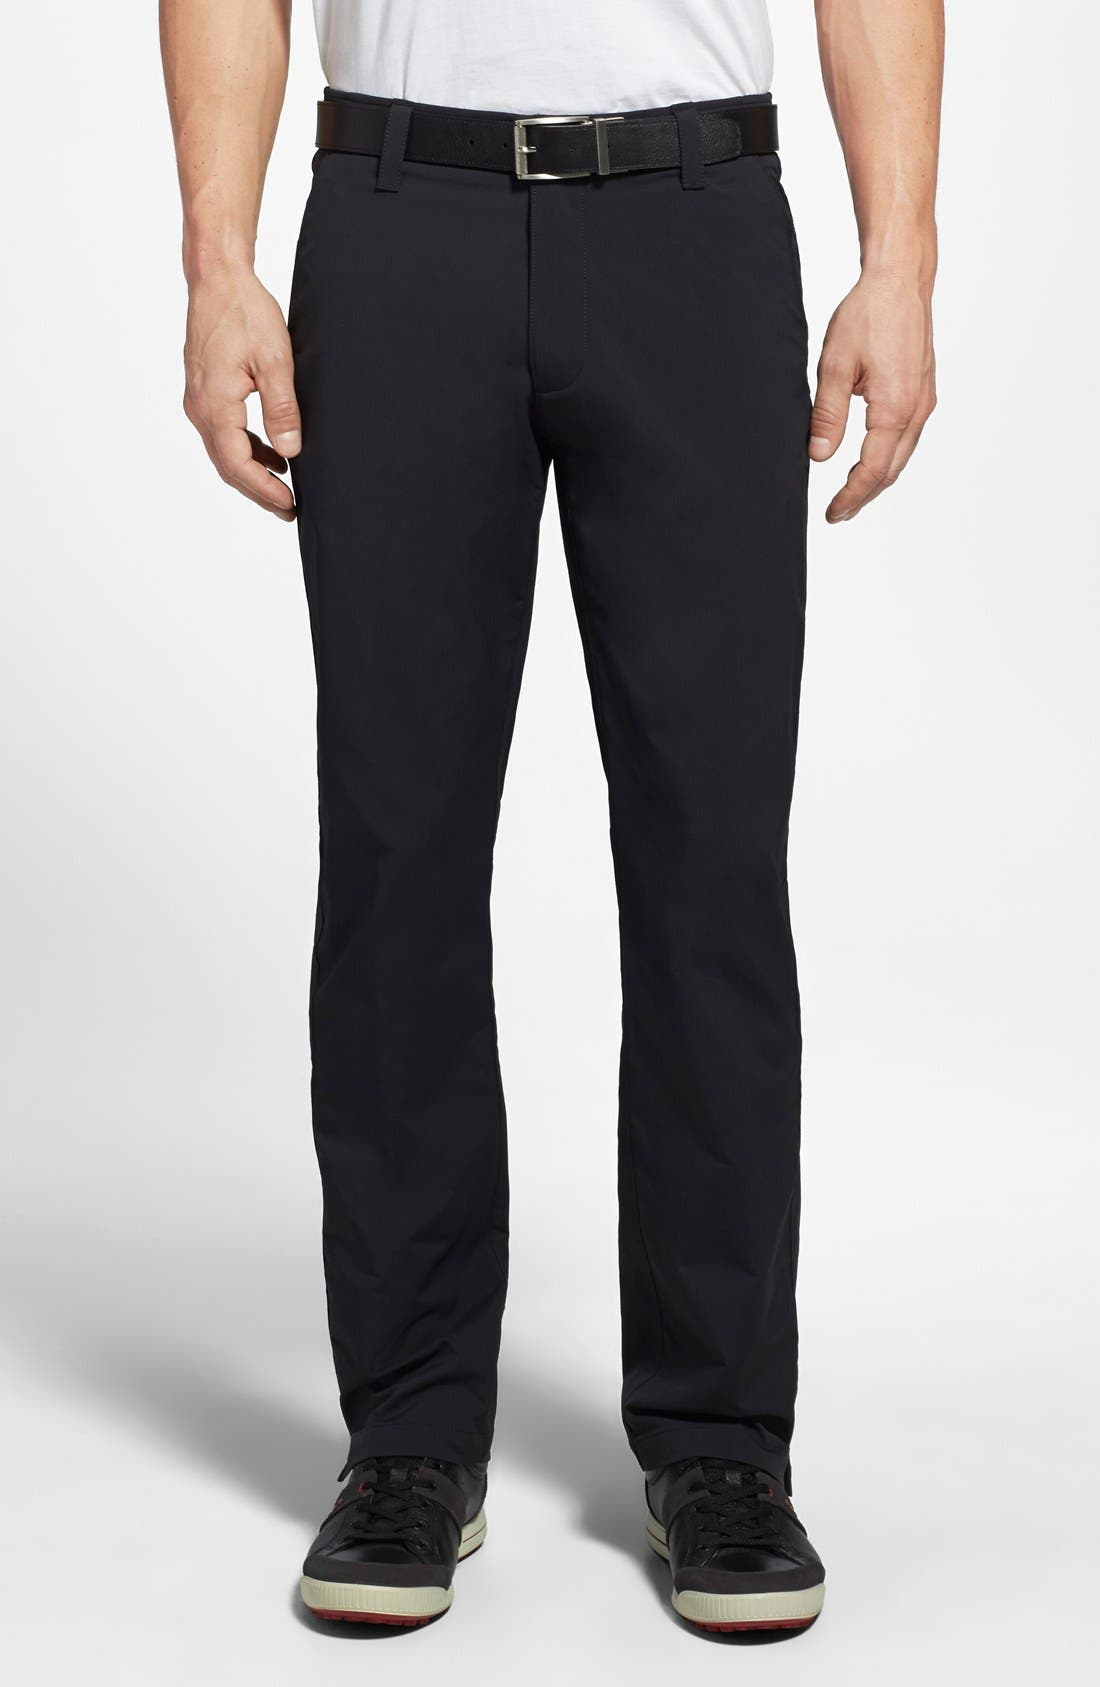 Alternate Image 1 Selected - Under Armour 'Matchplay' Pants